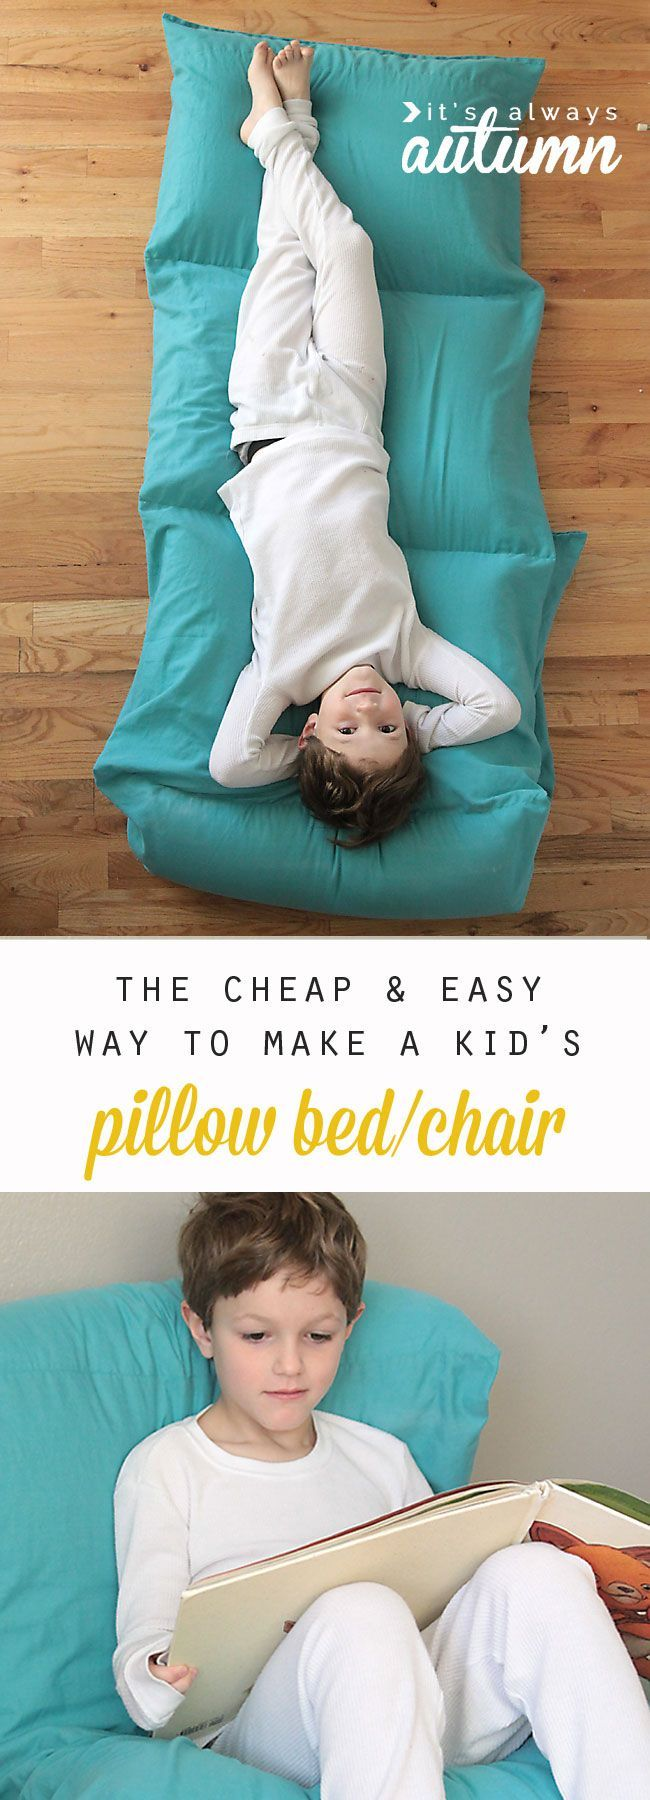 So cute! the cheapest and easiest way to make a kids' pillow bed. free sewing pattern and tutorial #DIY #pillowbedchair